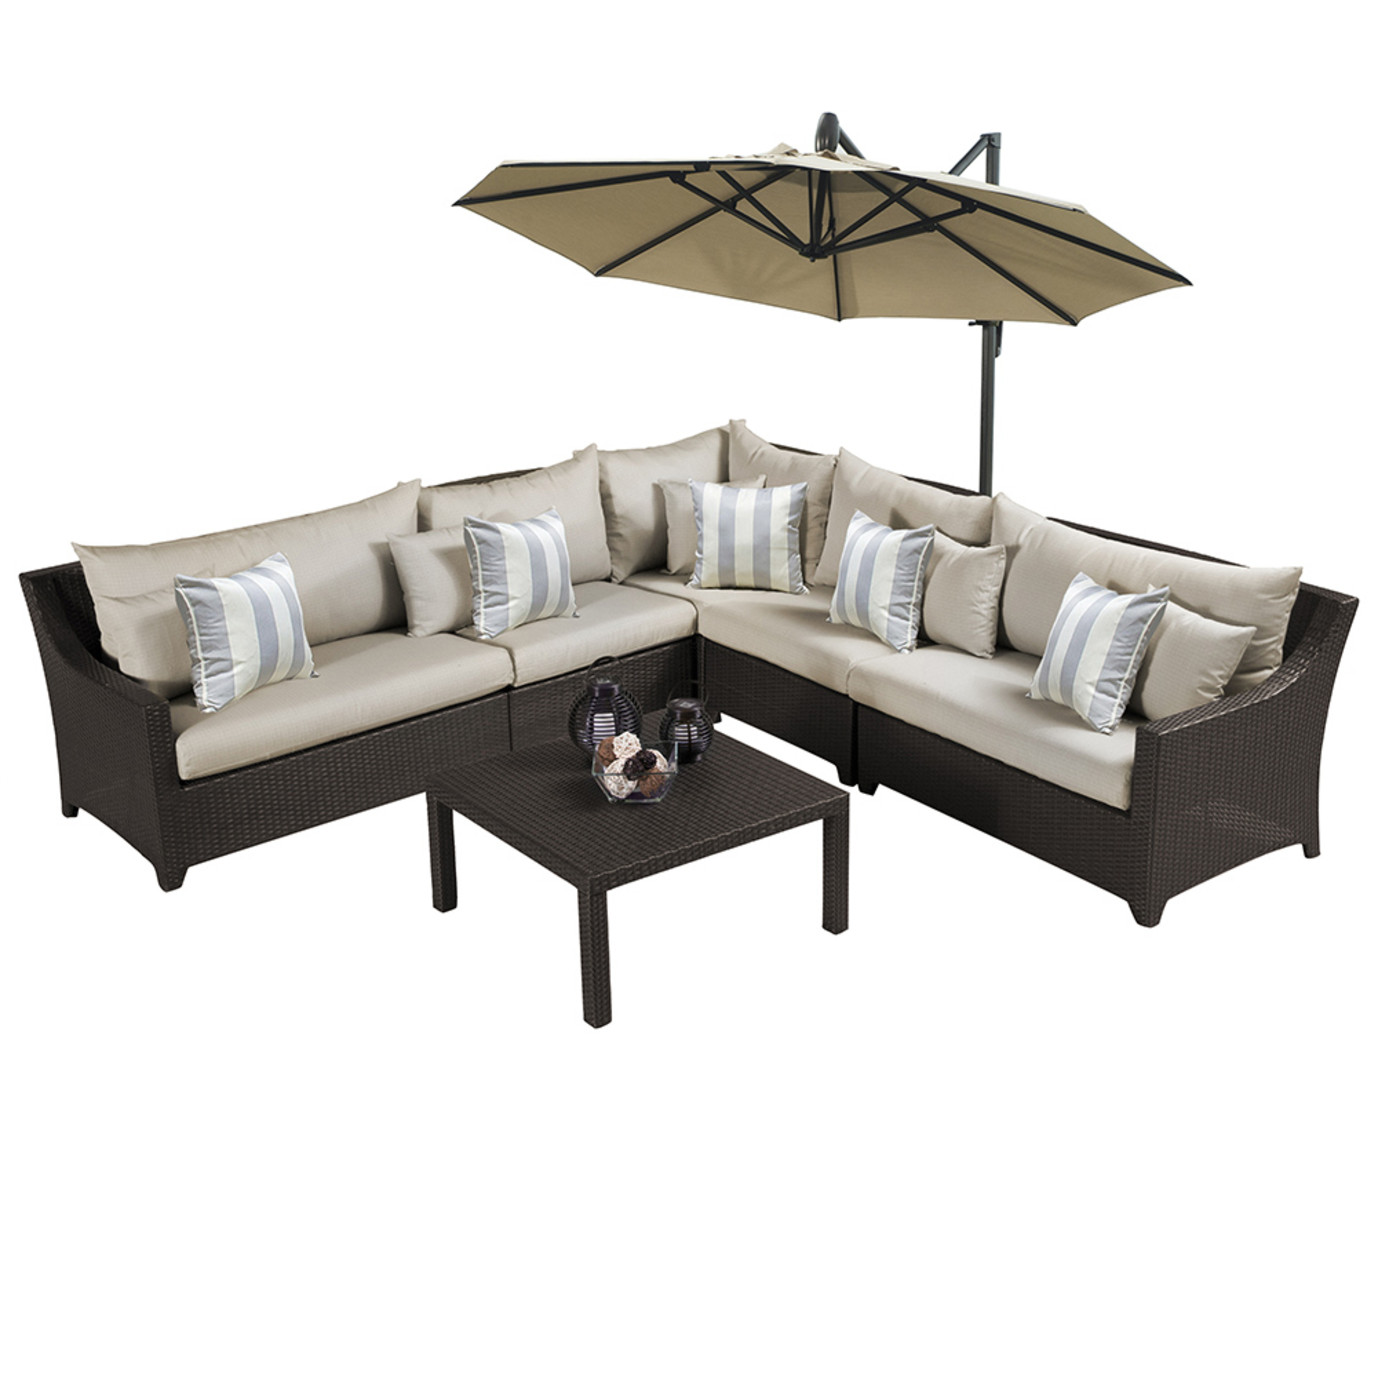 Deco™ 9pc Sectional and Table with Umbrella - Slate Gray